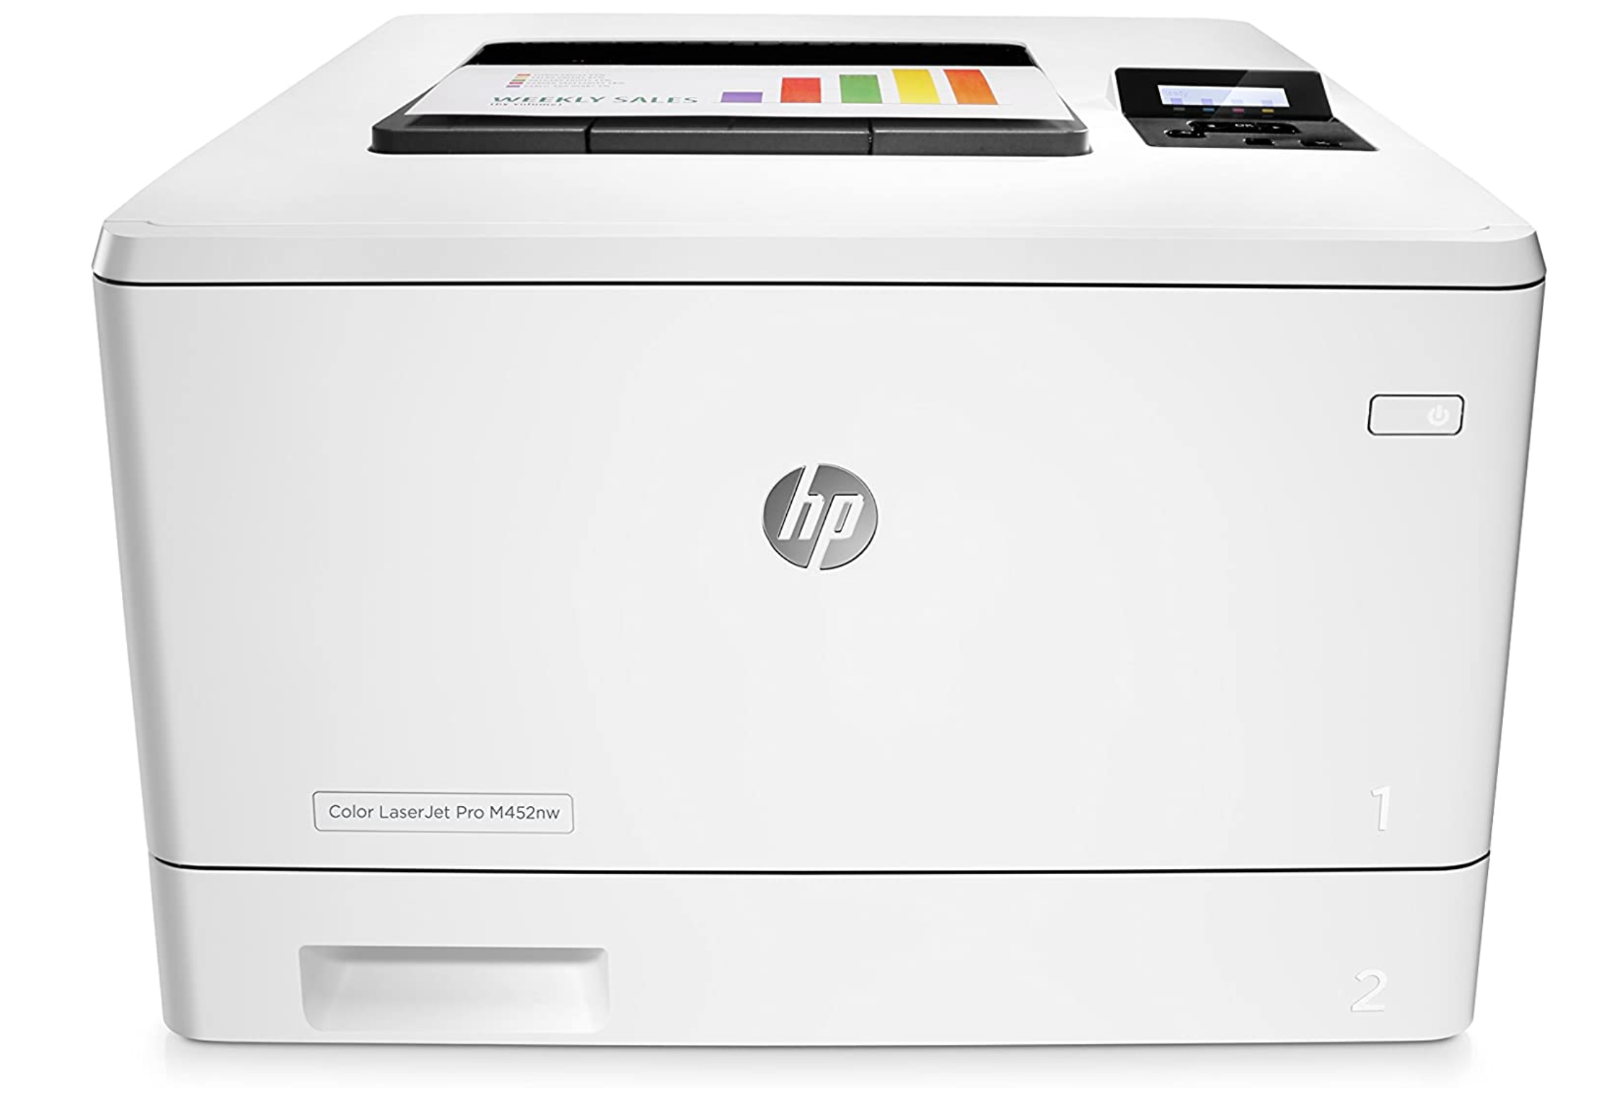 HP Laserjet Pro M452nw Wireless Color Laser Printer with Bui